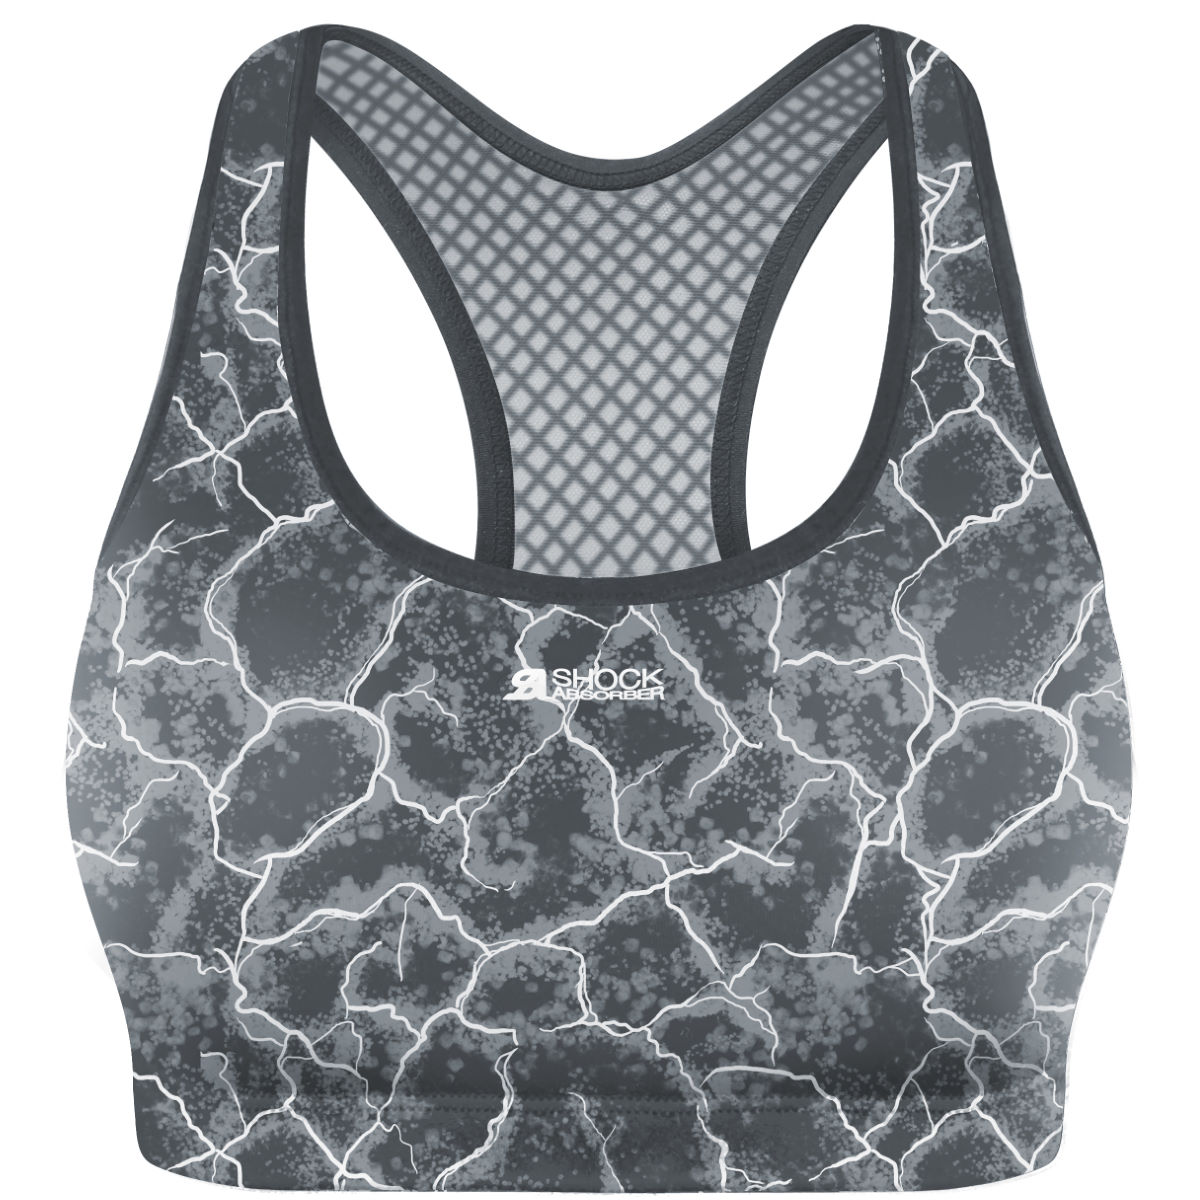 Shock Absorber Active Crop Top (Print)   Sports Bras